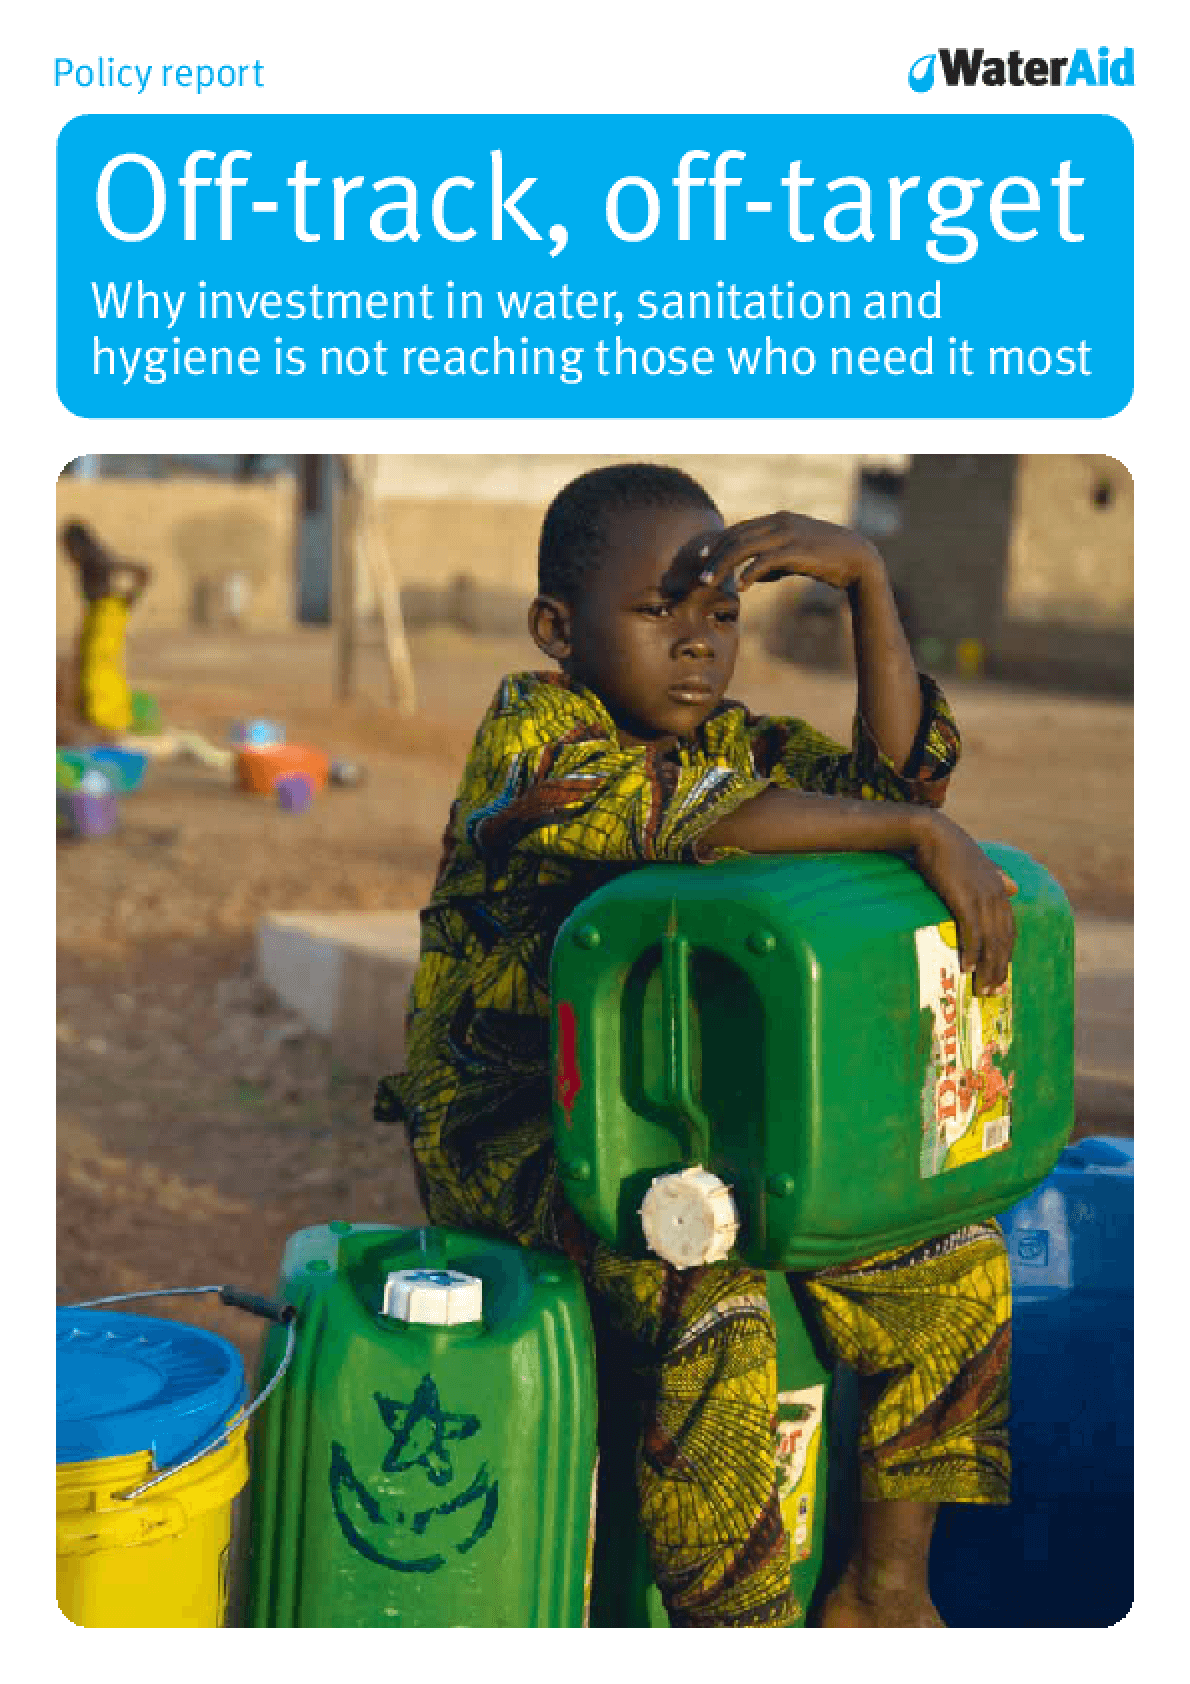 Off-track, Off-target: Why Investment in Water, Sanitation, and Hygiene Is Not Reaching Those Who Need It Most